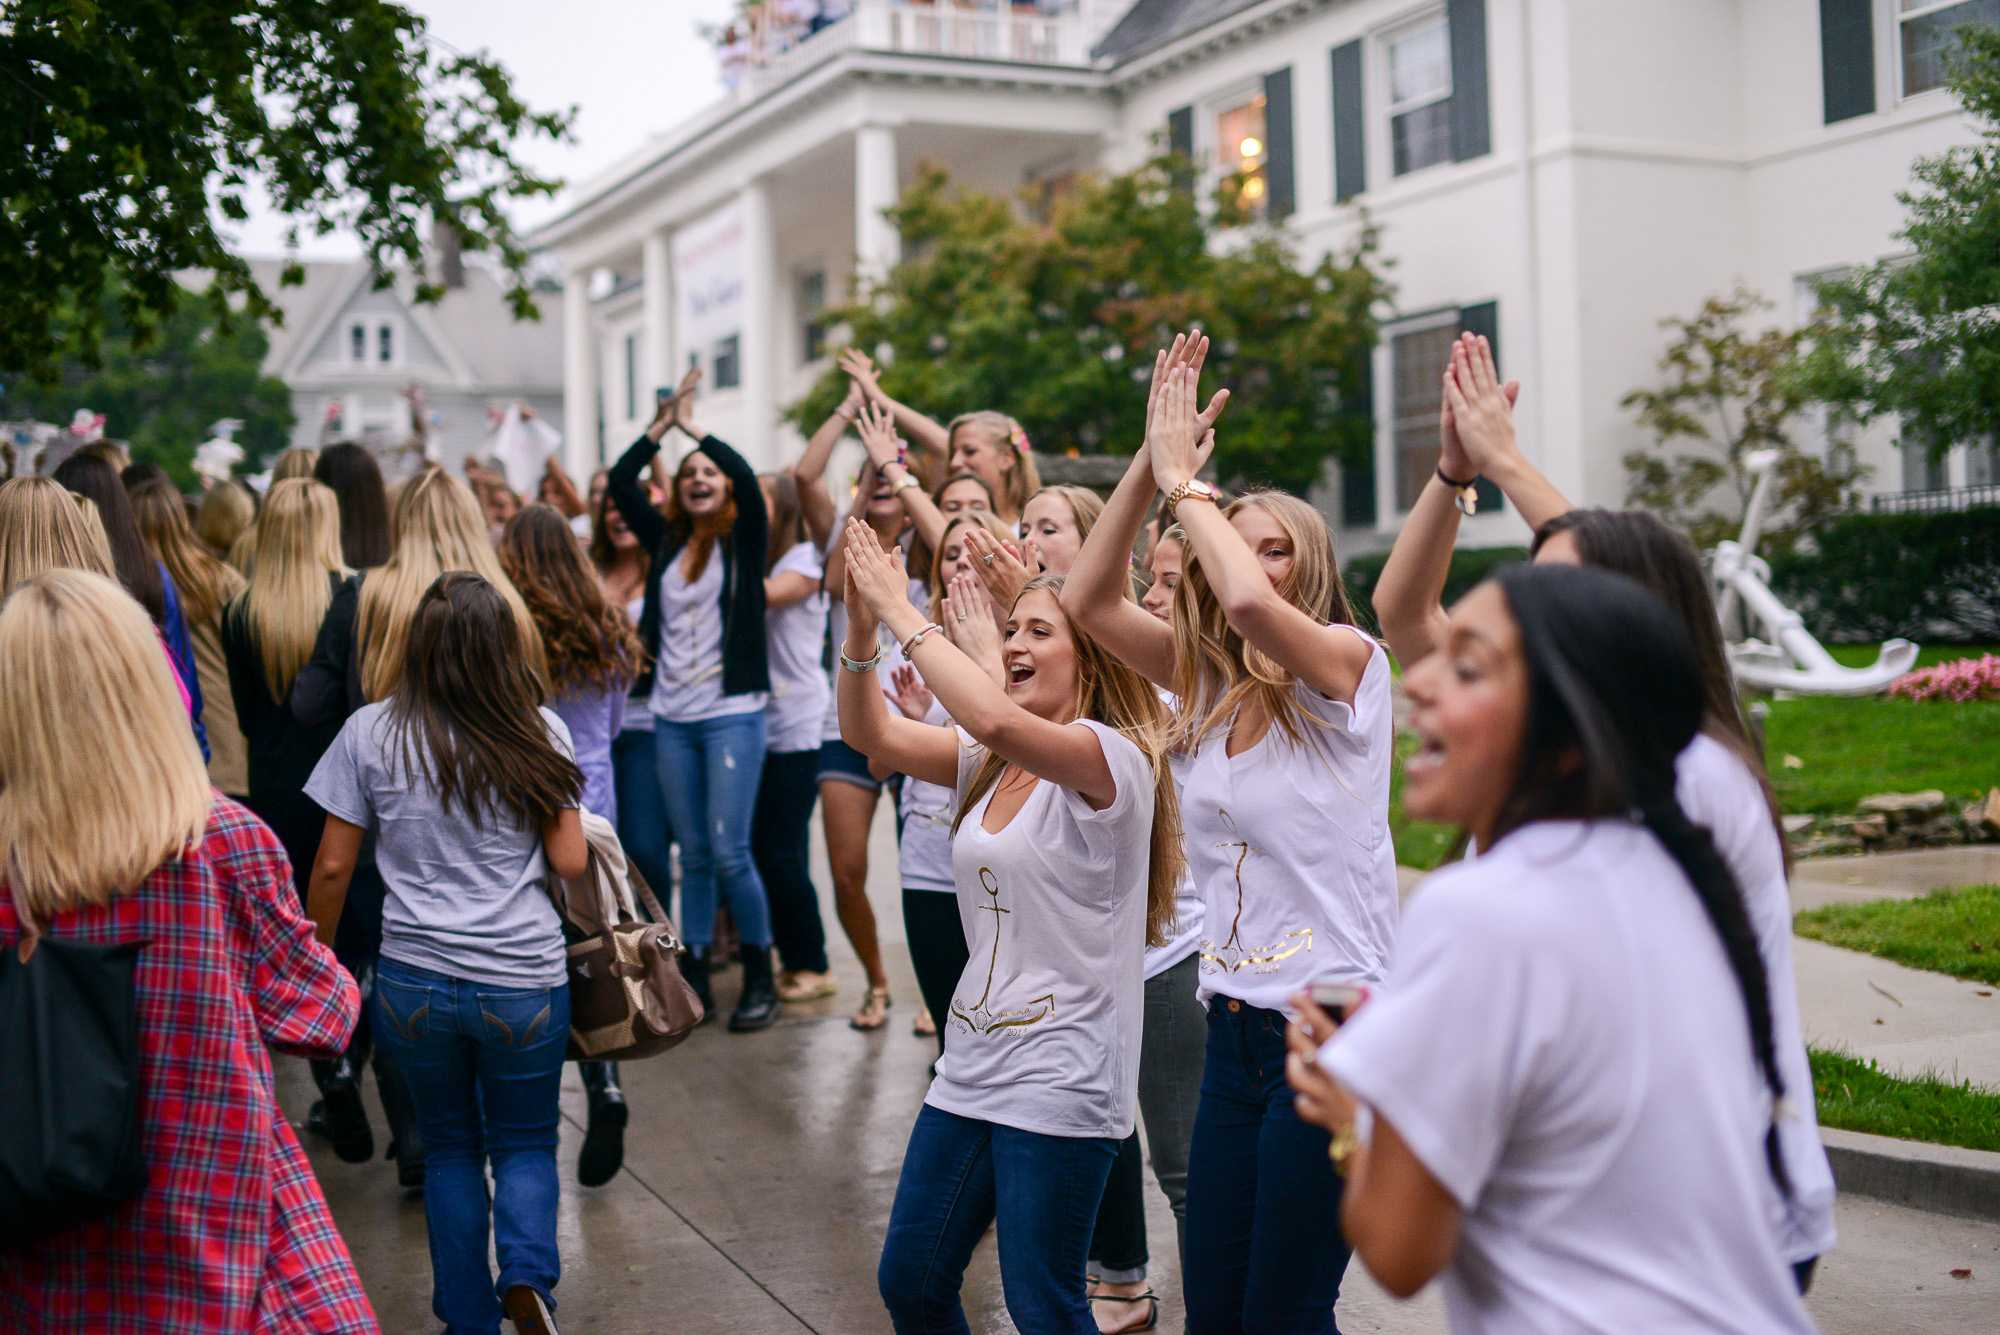 These sisters form a triangle with their arms and hands, showing sorority pride during Bid Day on Monday, Sept. 15, 2014.